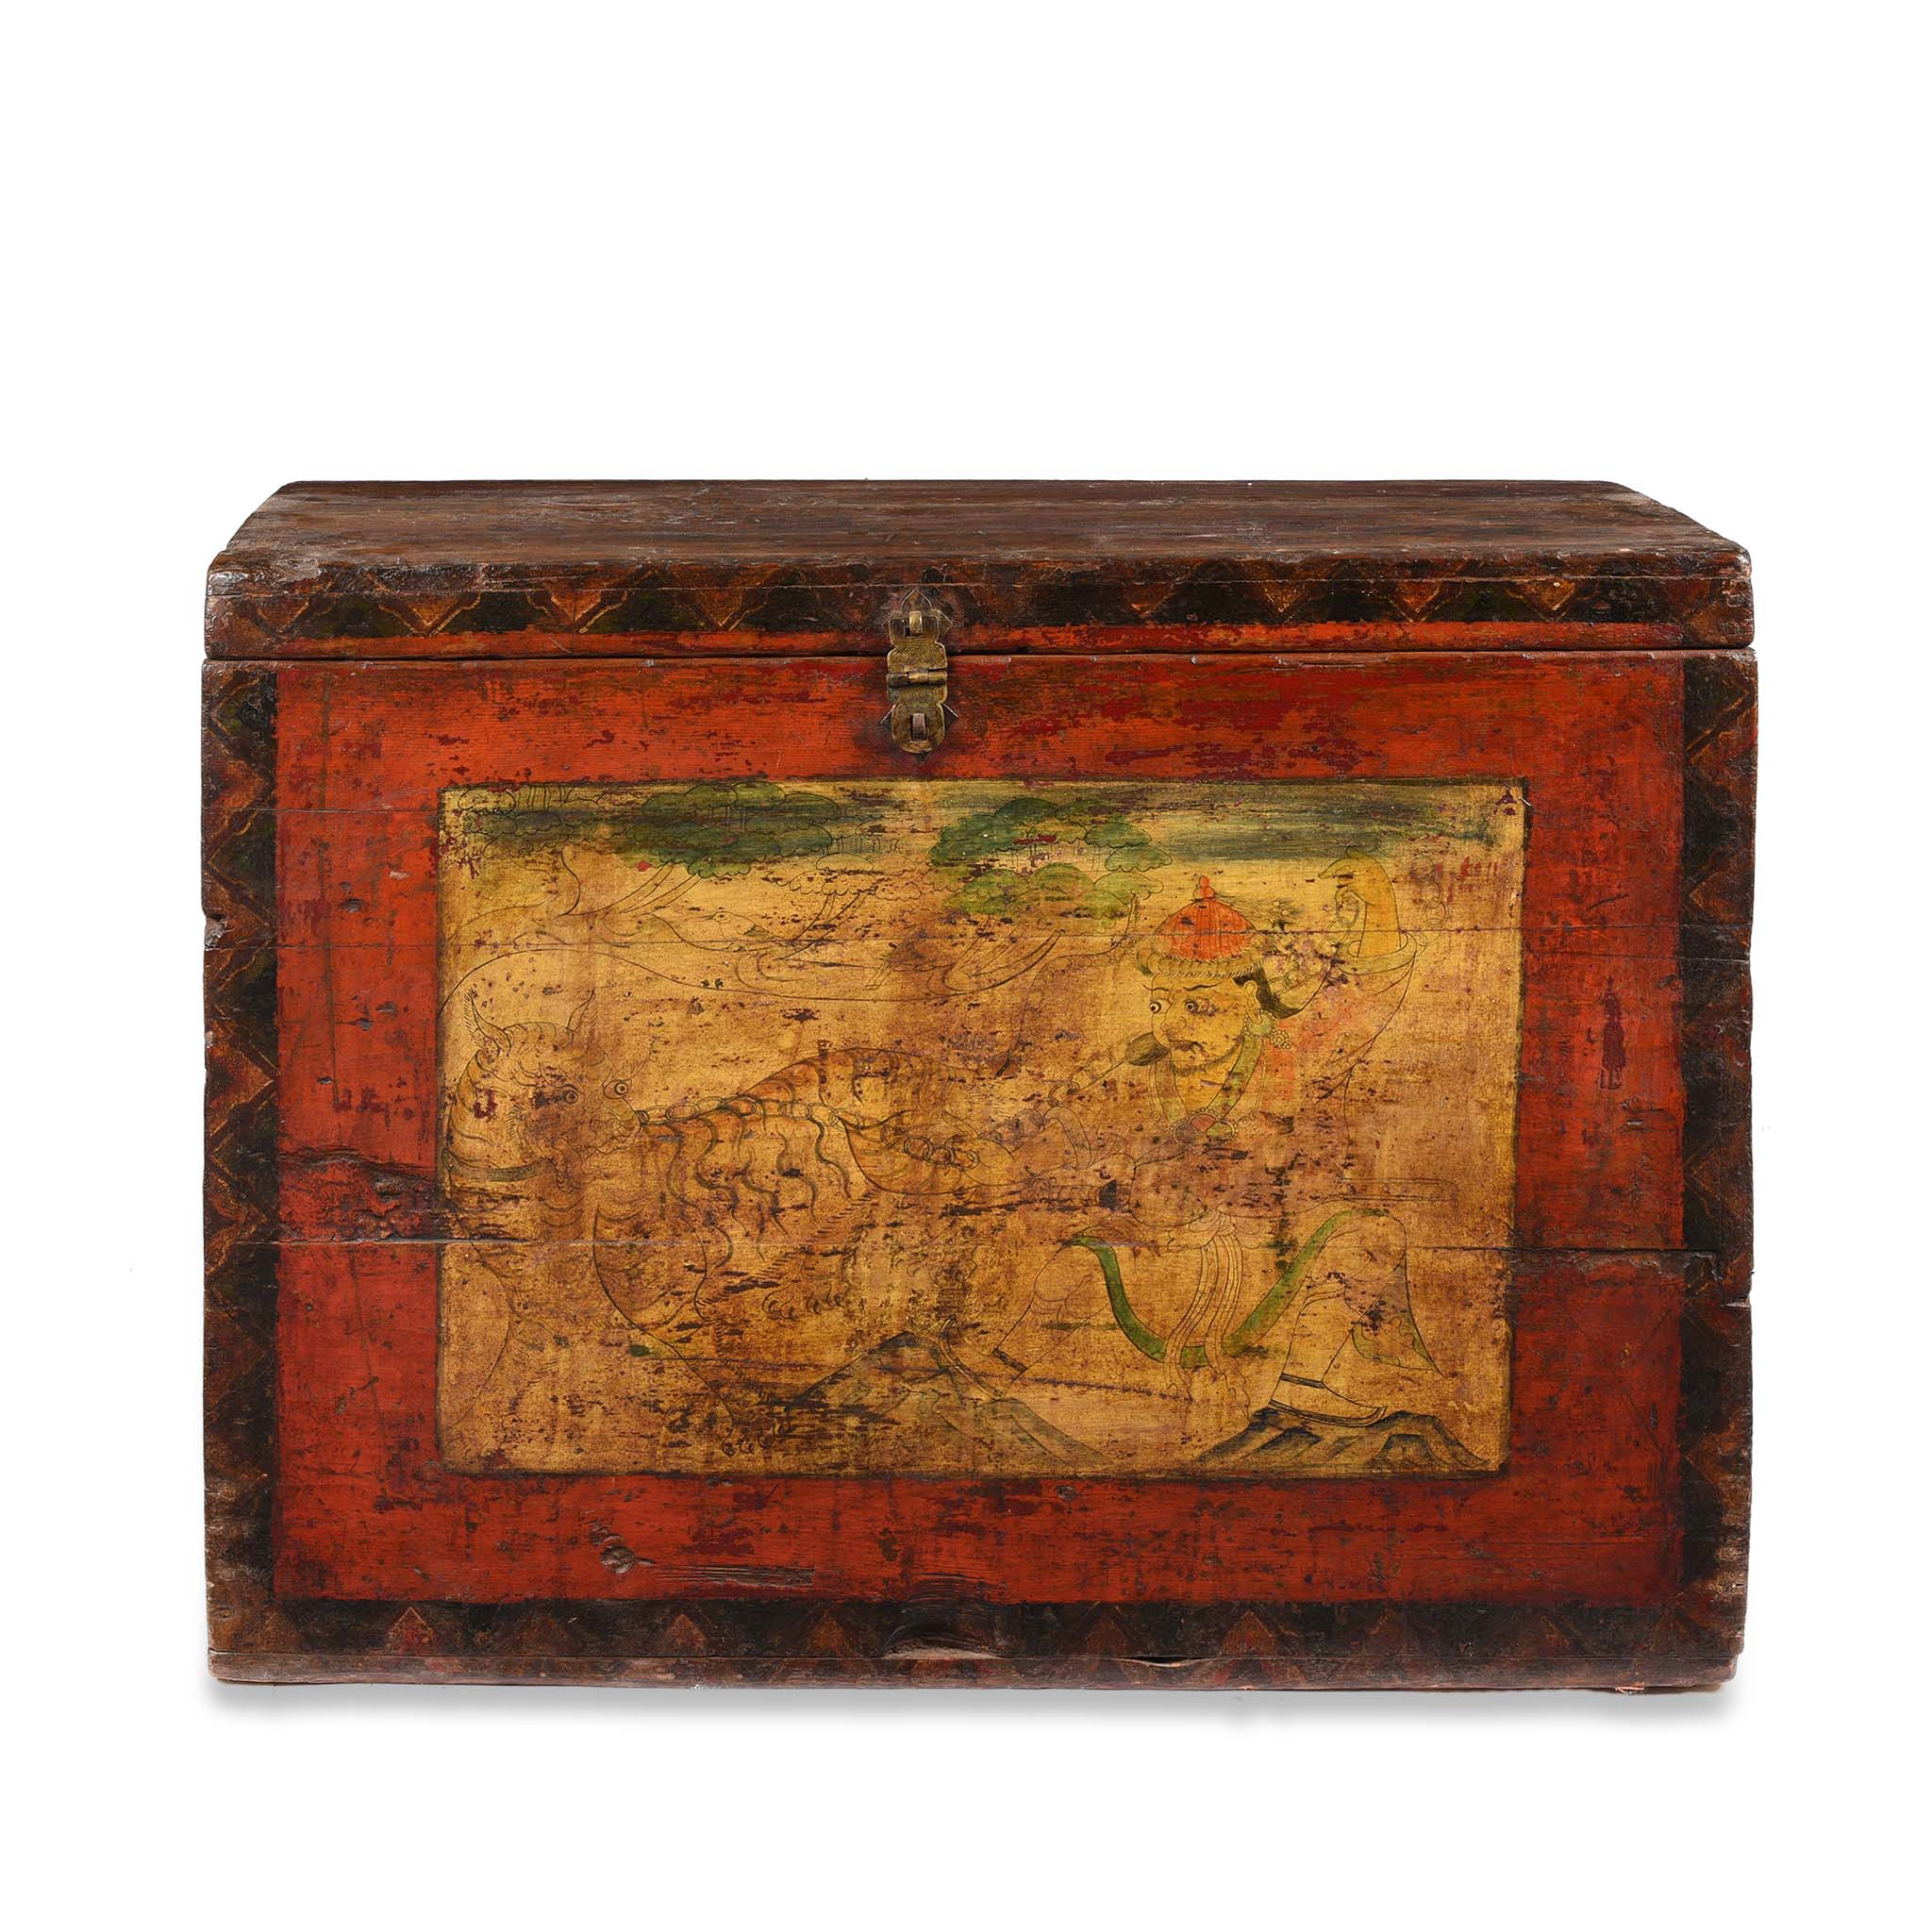 Painted Tibetan Chest - Late 19thC